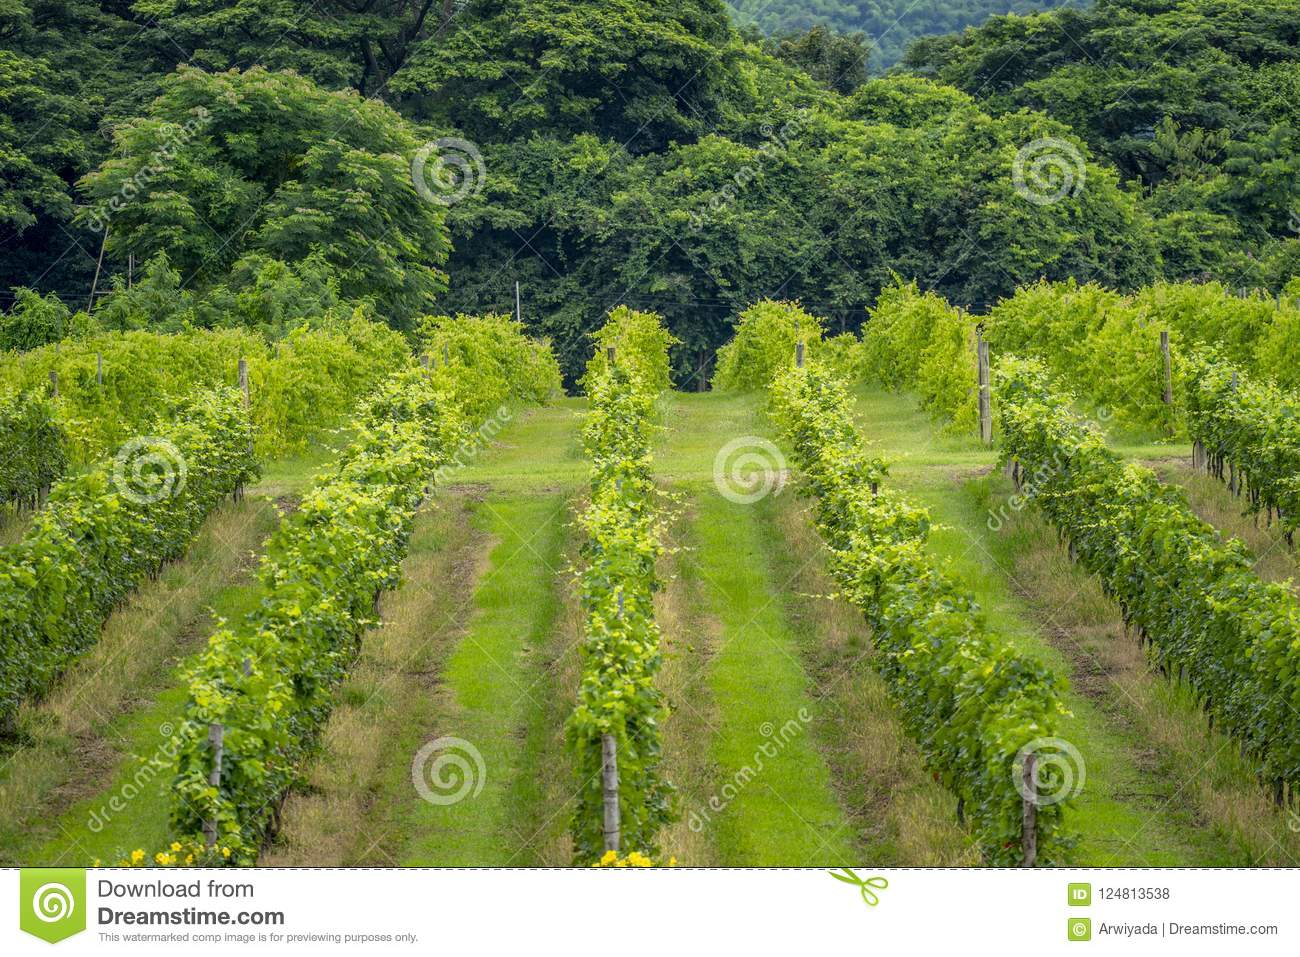 Thailand vineyards on the mountains in summer.